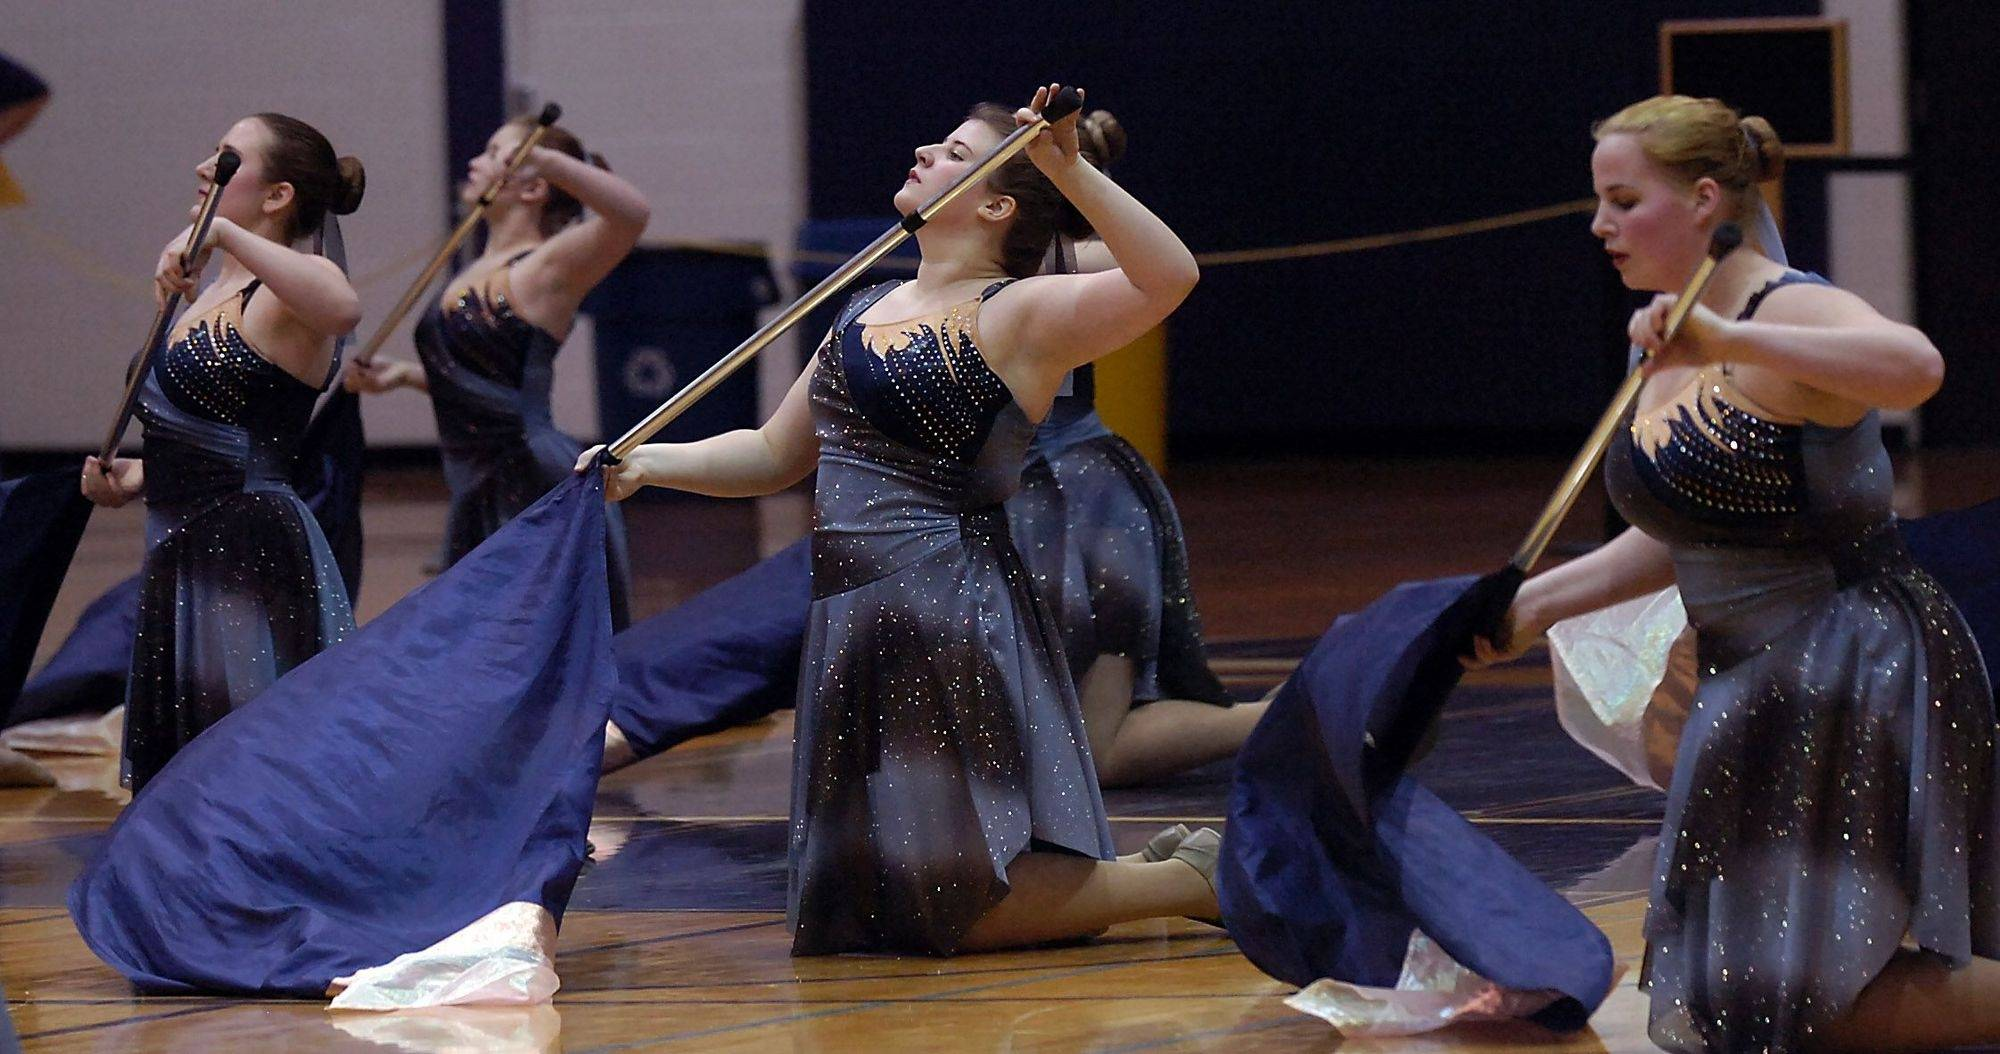 The St. Charles East Lyrical Flag Class AAA team shows off its skills performing a musical routine at Rolling Meadows High School on Saturday.